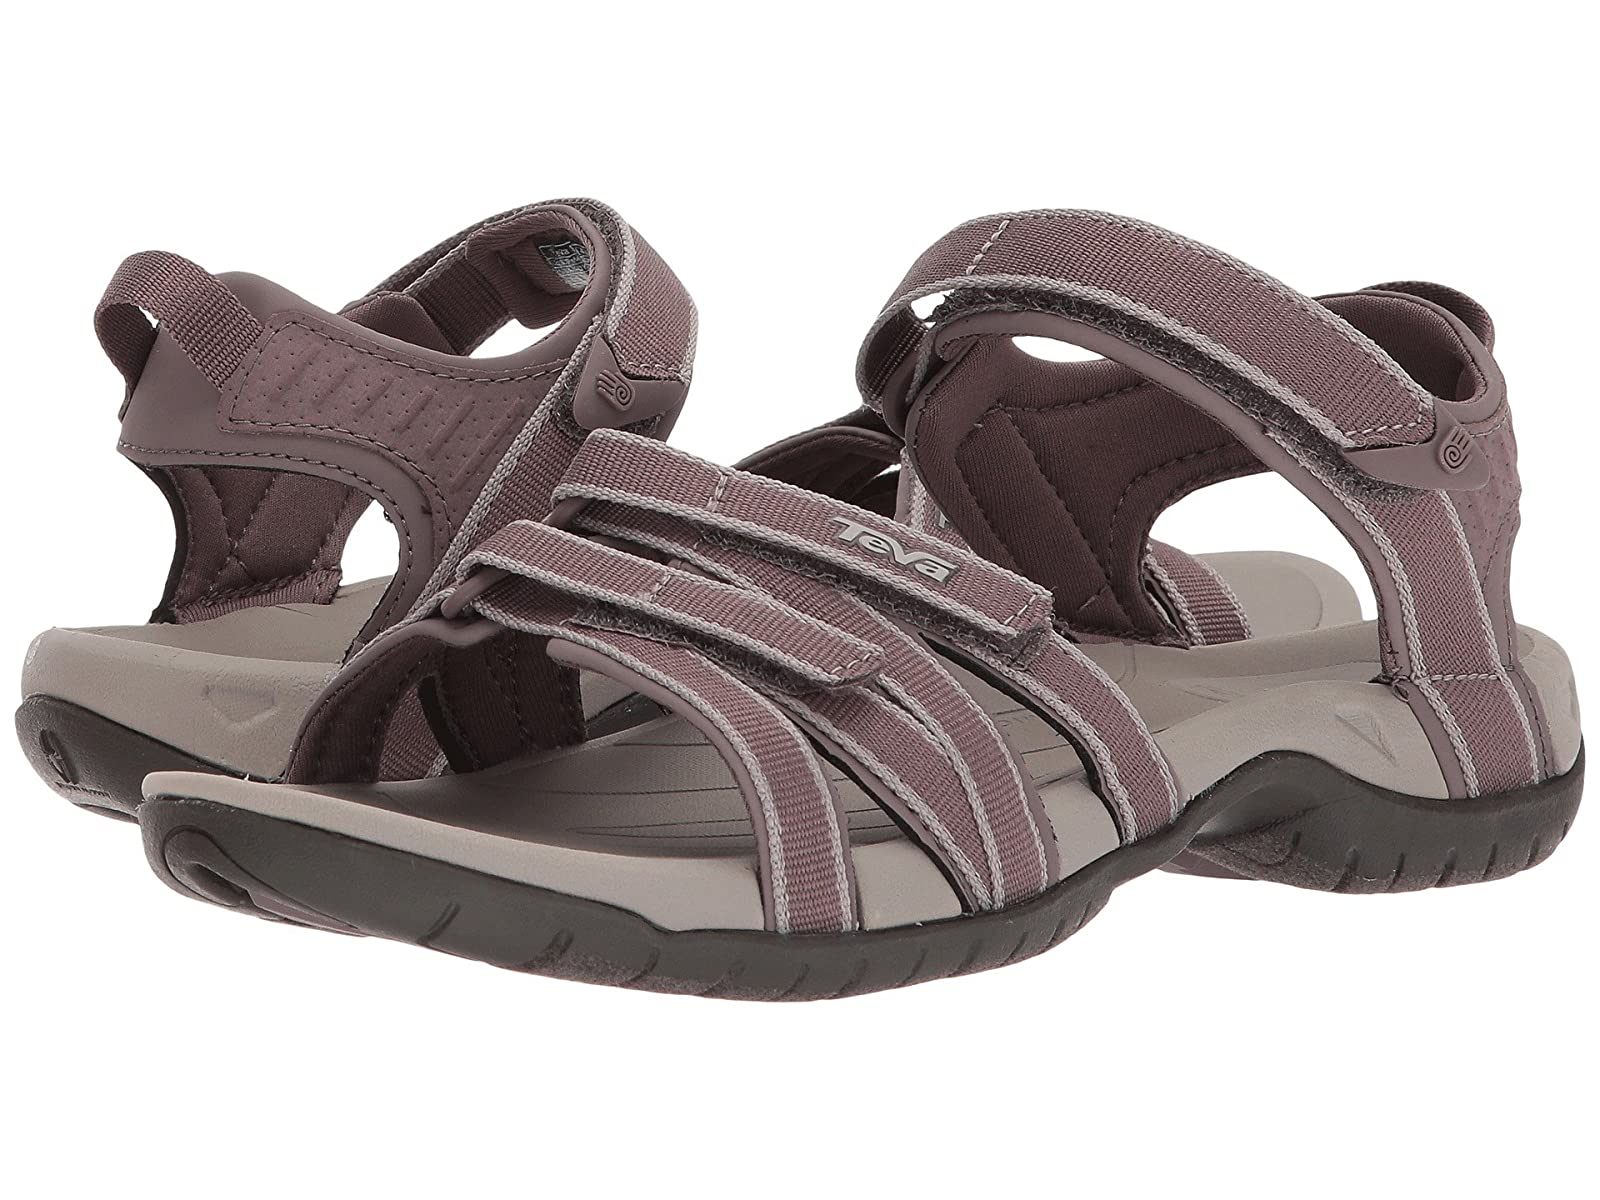 Teva TirraAtmospheric grades have affordable shoes